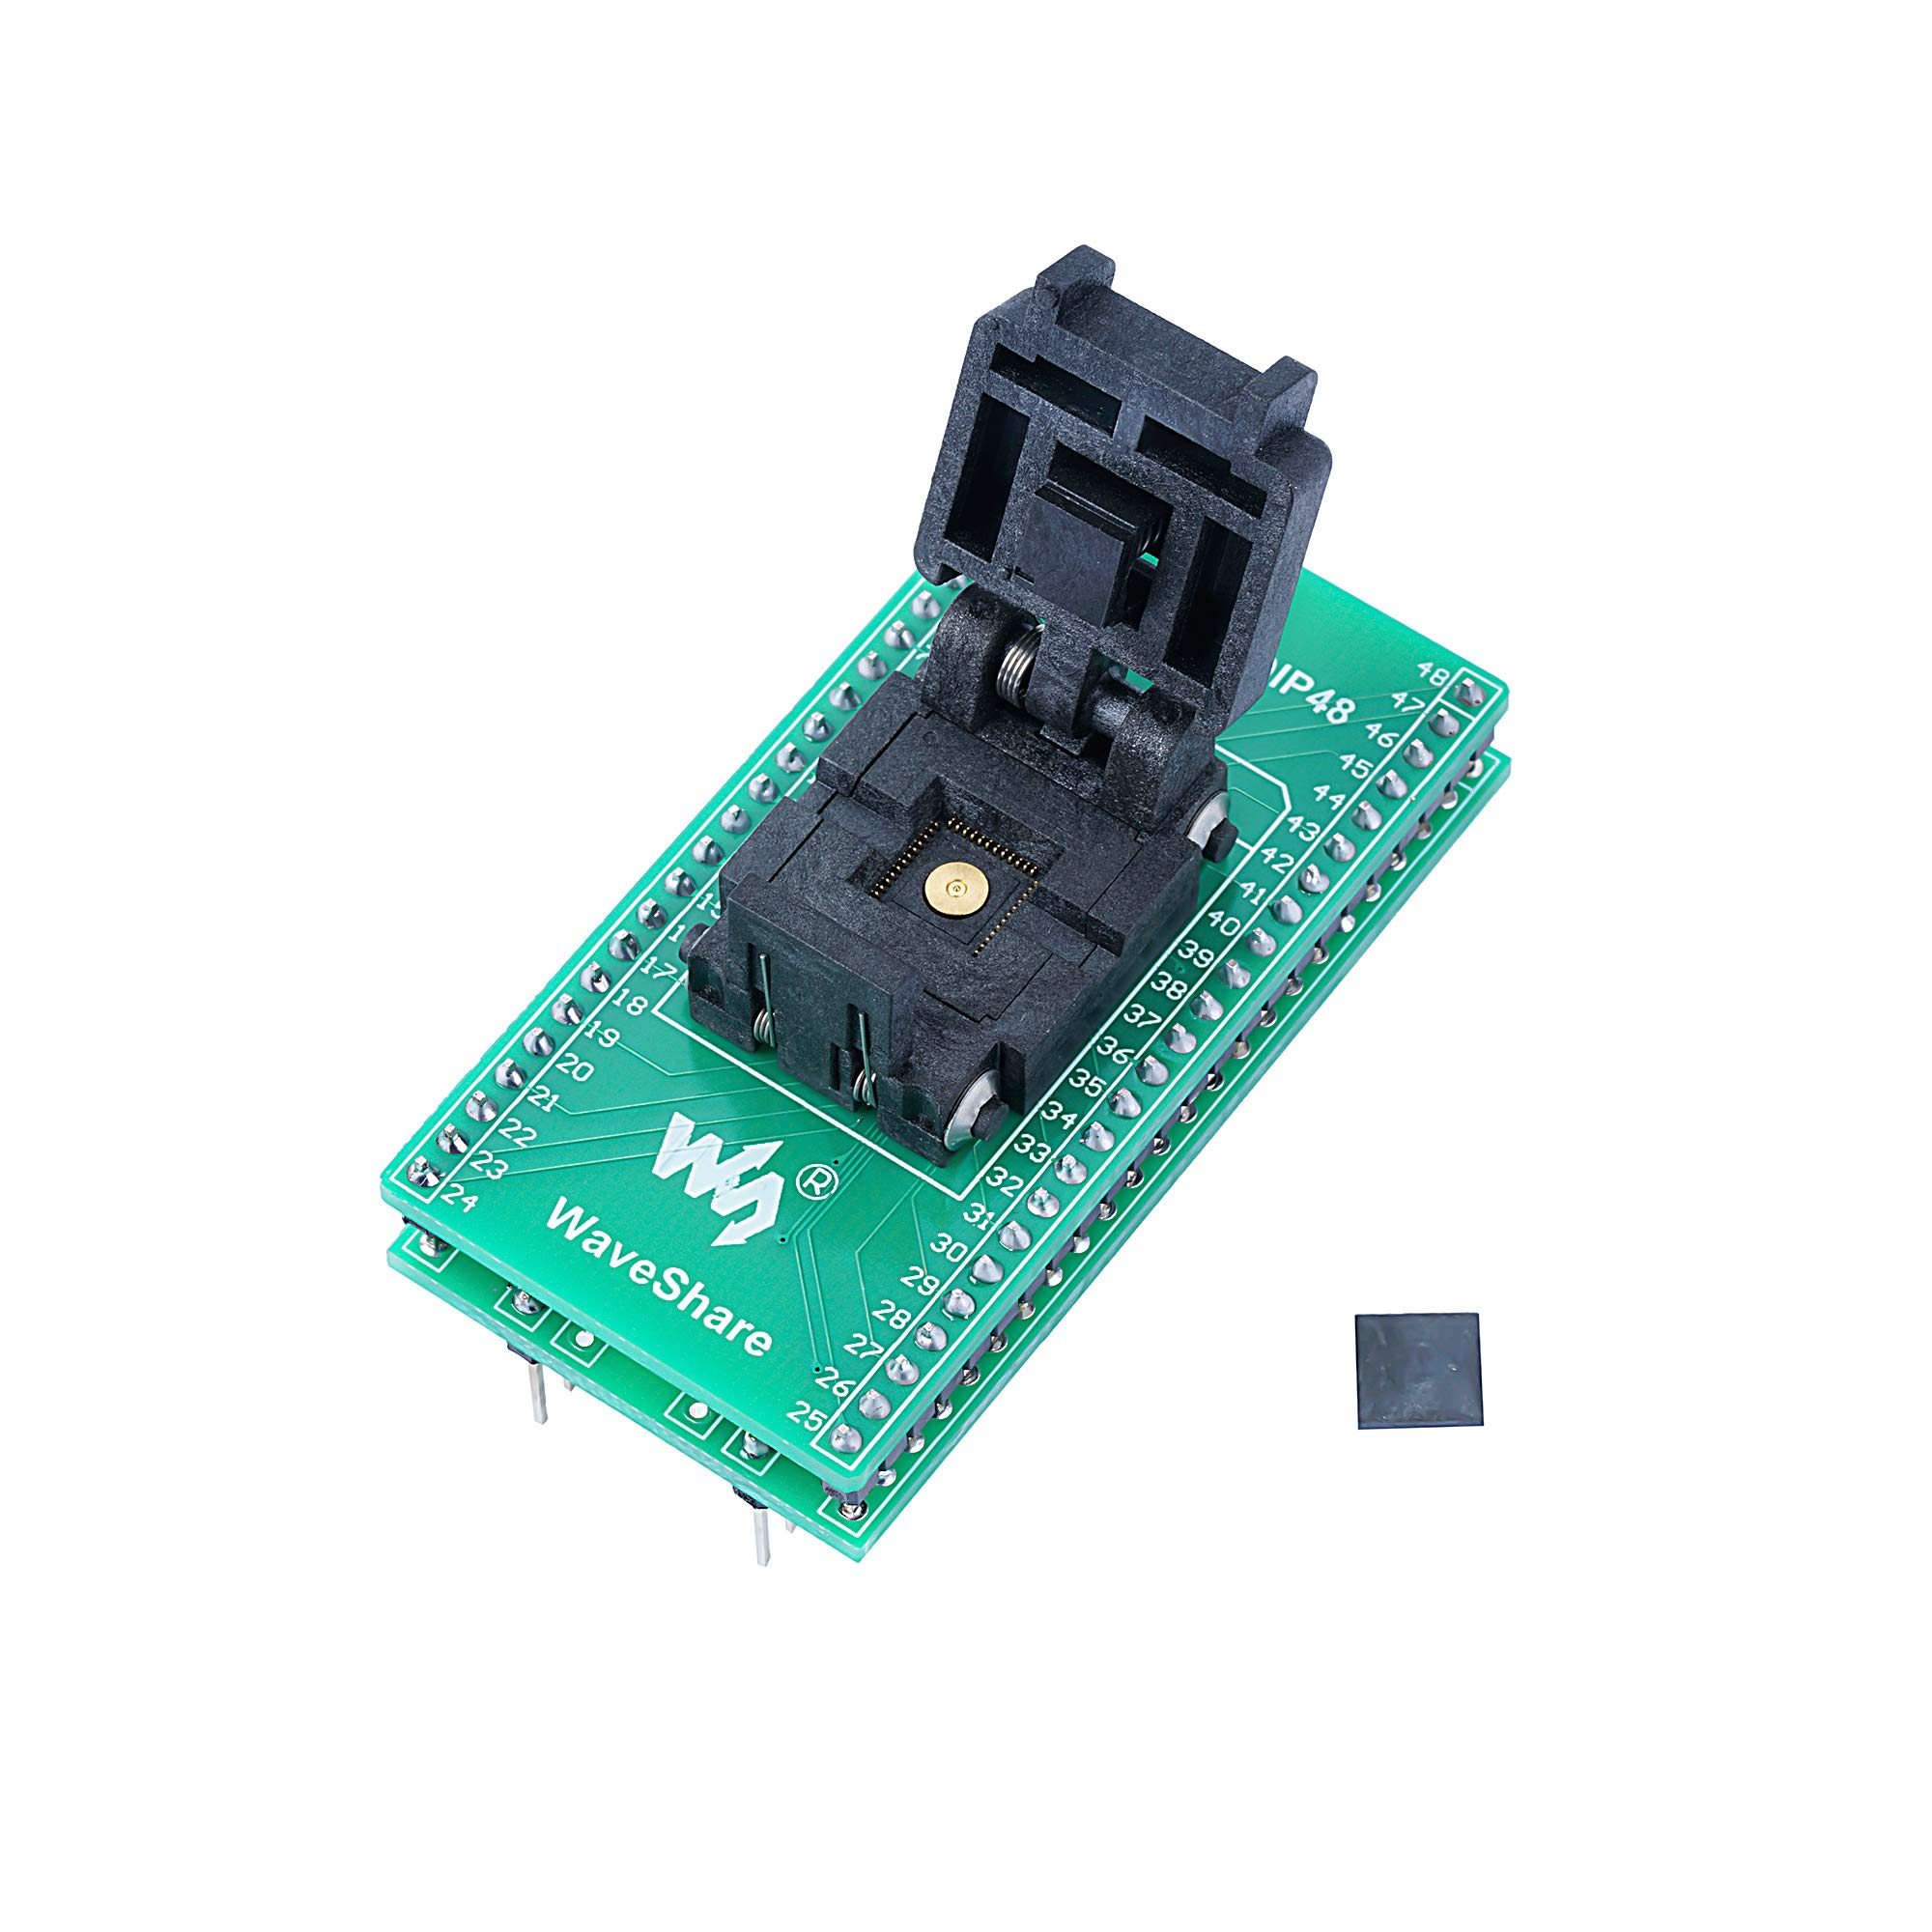 CQRobot Programmer Adapter Pitch 0.5mm, QFN48 to DIP48, Plastronics IC Test Socket and Programming Adapter for QFN48 MLF48 MLP48 Package. by CQRobot